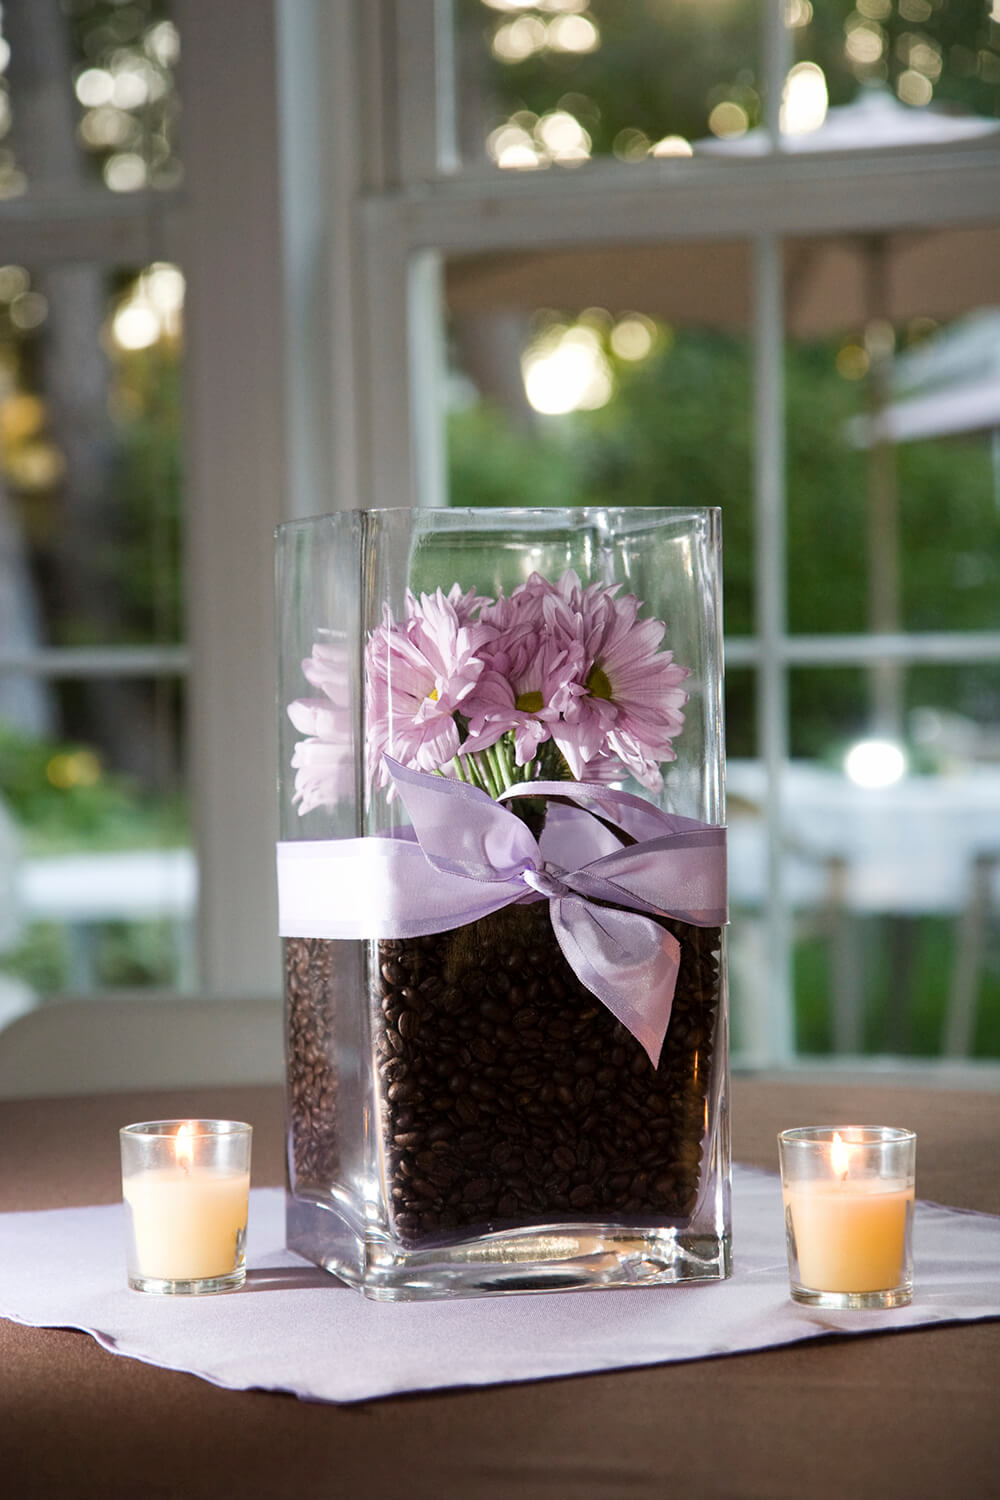 This take on a floral arrangement places a small bouquet of lavender daisies tucked into coffee beans. The flowers don't quiet reach the top of the vase, which is wrapped in a pastel ribbon. As the candles next to the vase warm, the coffee beans will start giving off a fragrant scent.